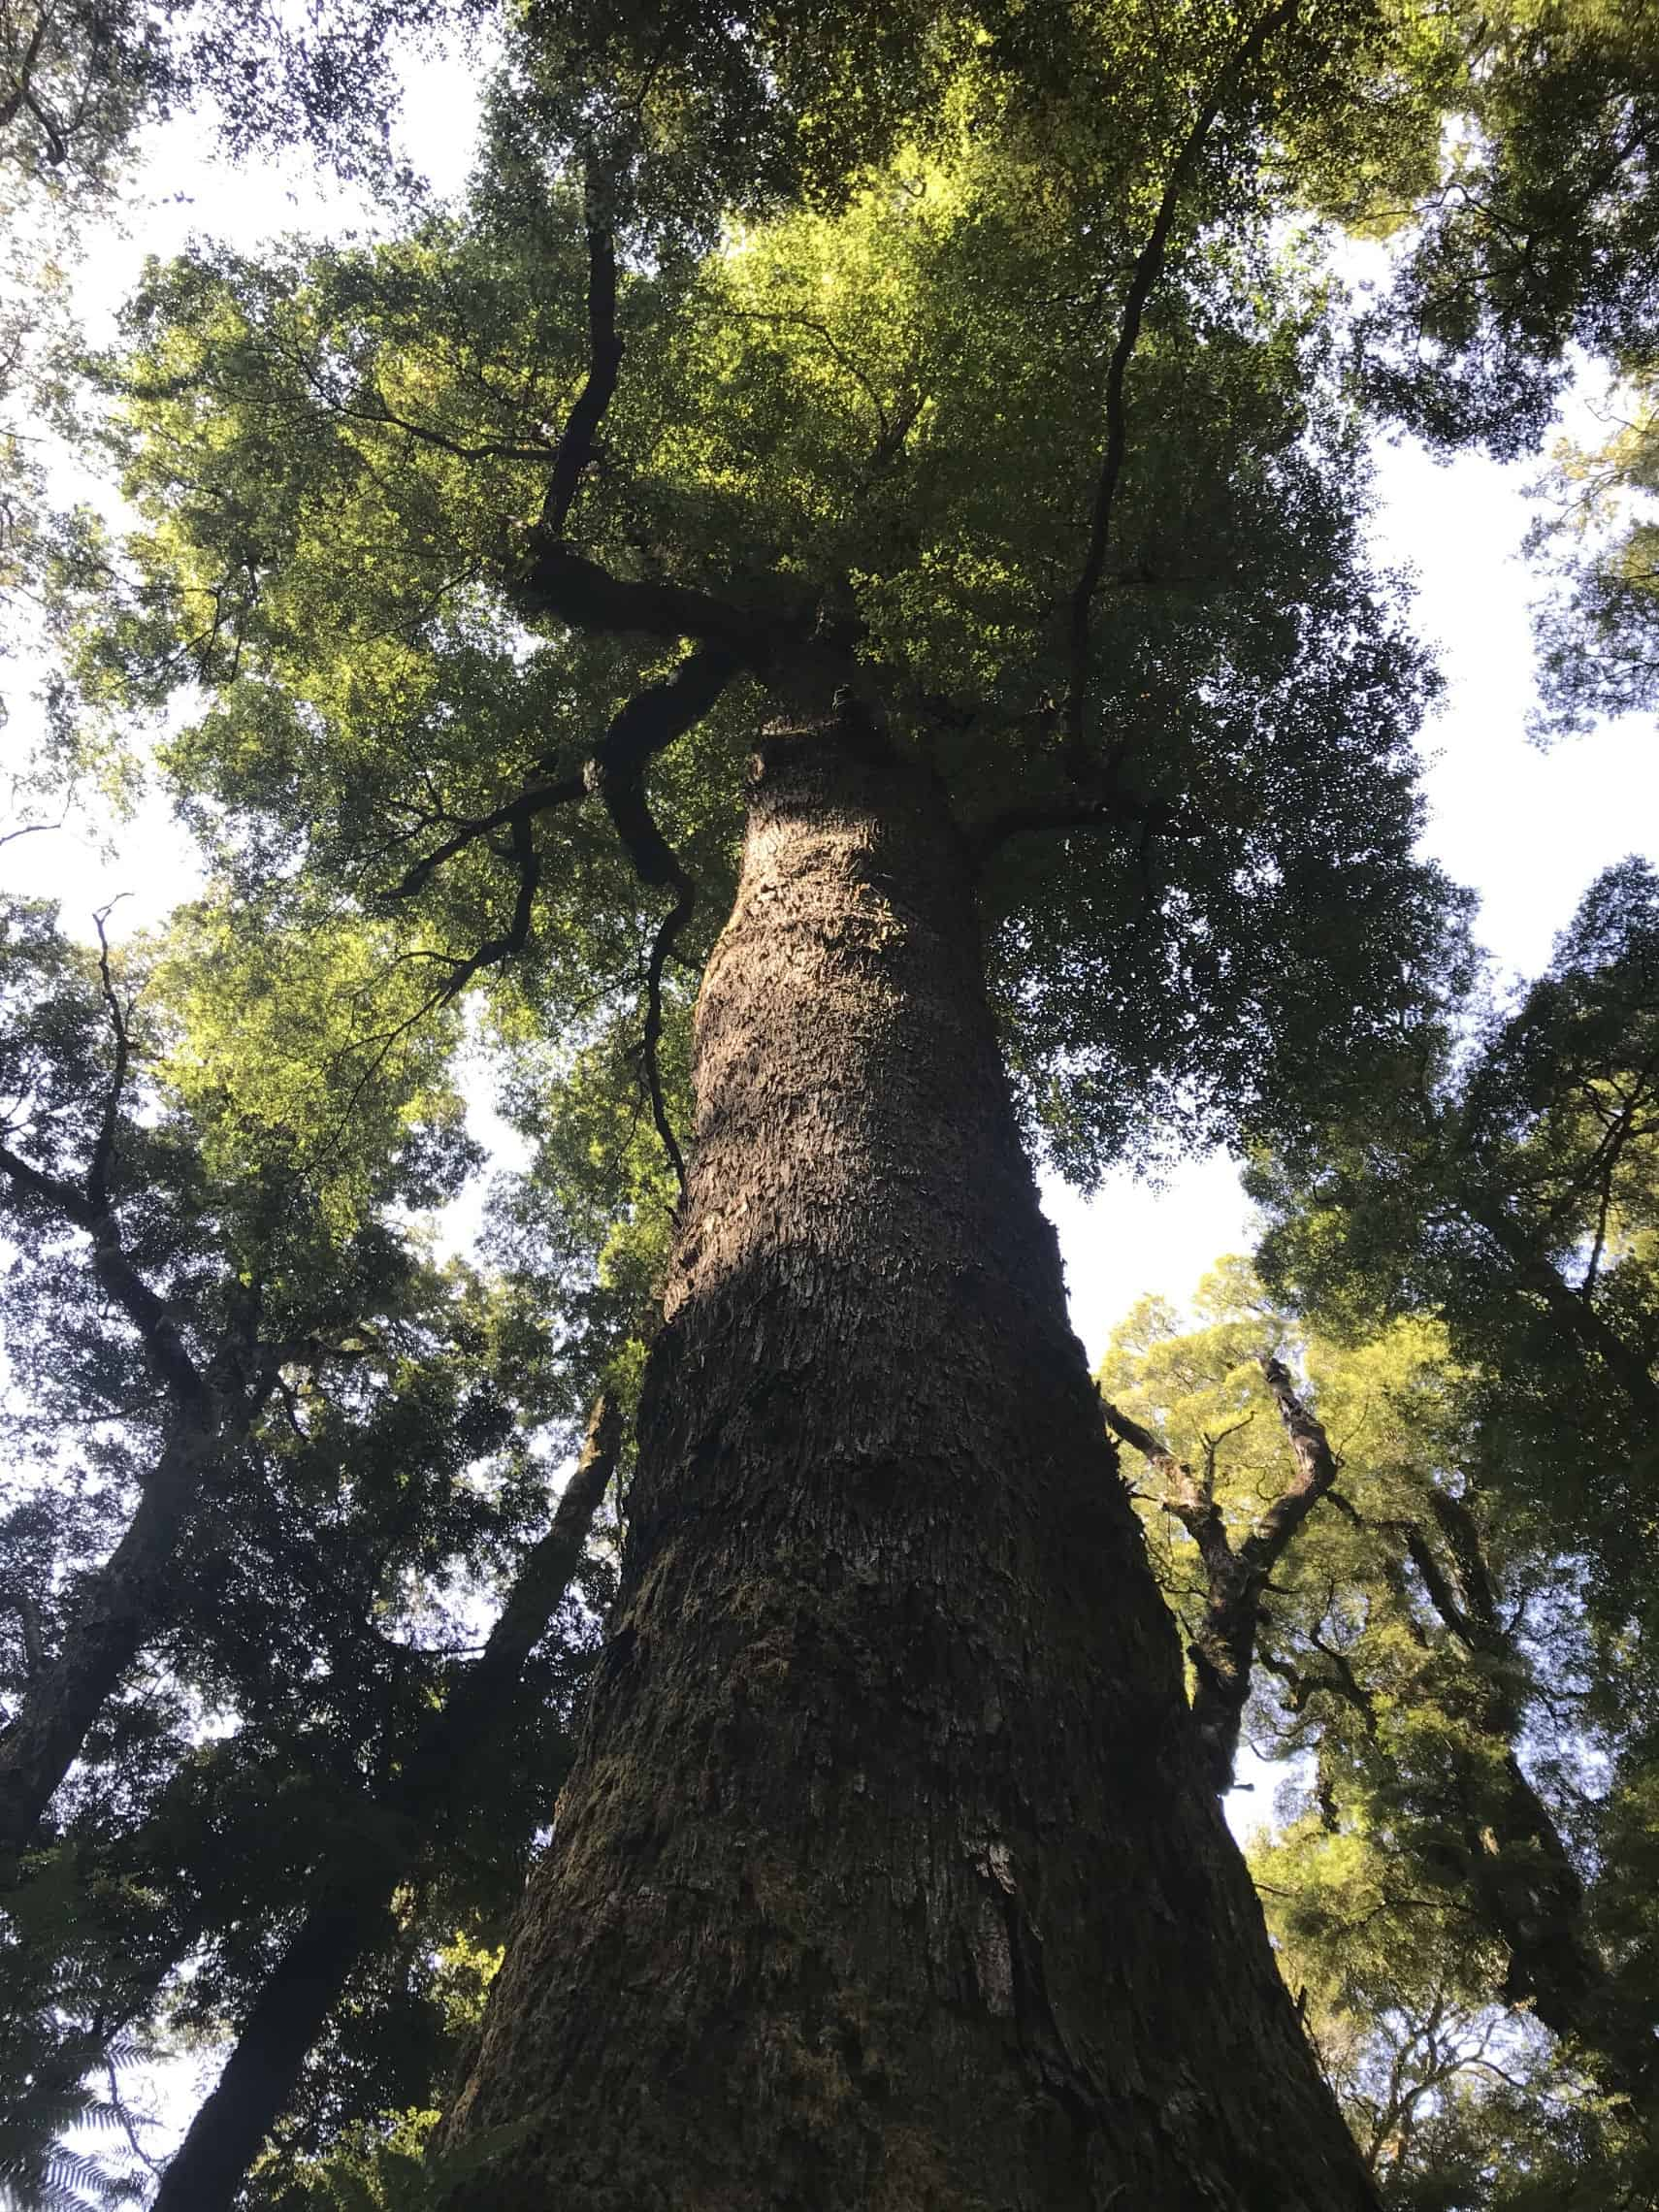 Giant Trees of Kaimanawa Ranges